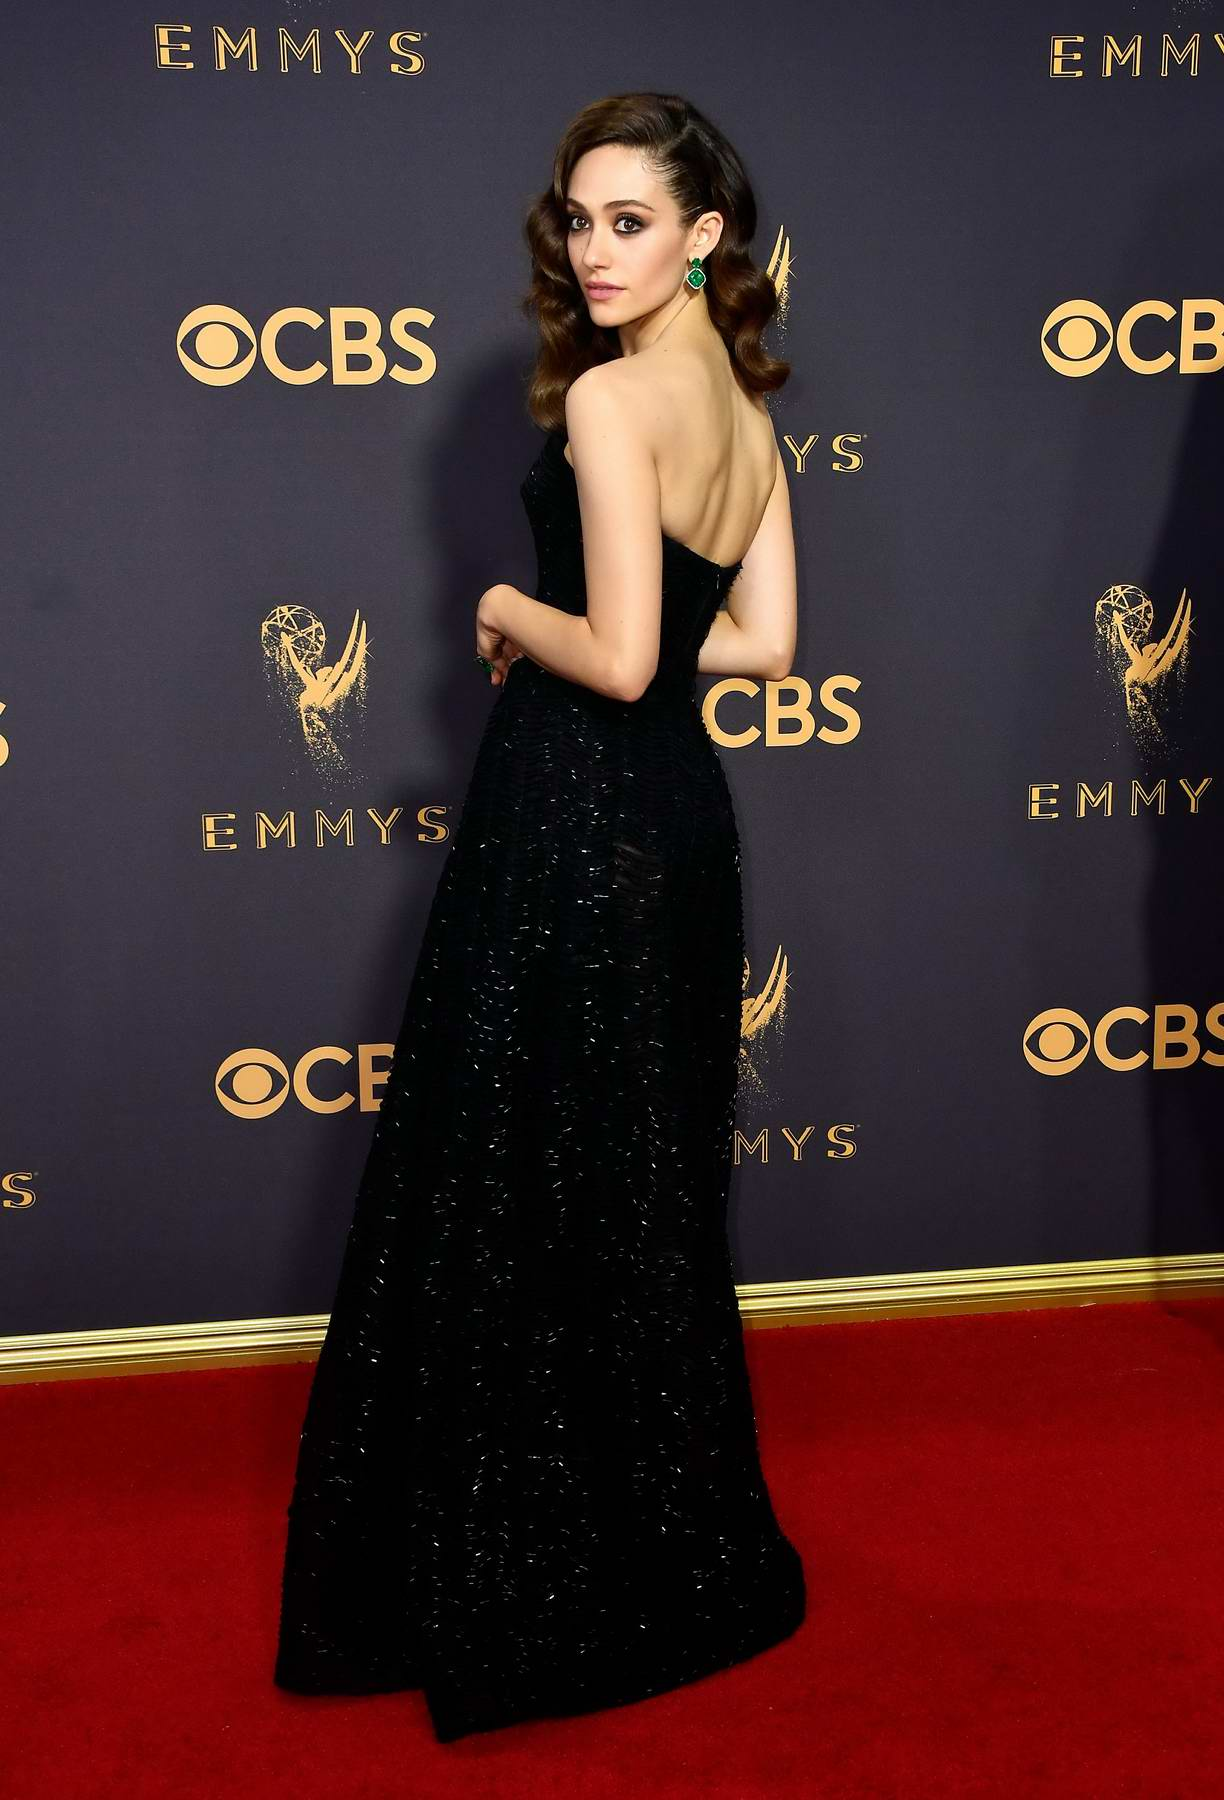 Emmy Rossum at 69th Annual Primetime EMMY Awards held at Microsoft Theater in Los Angeles